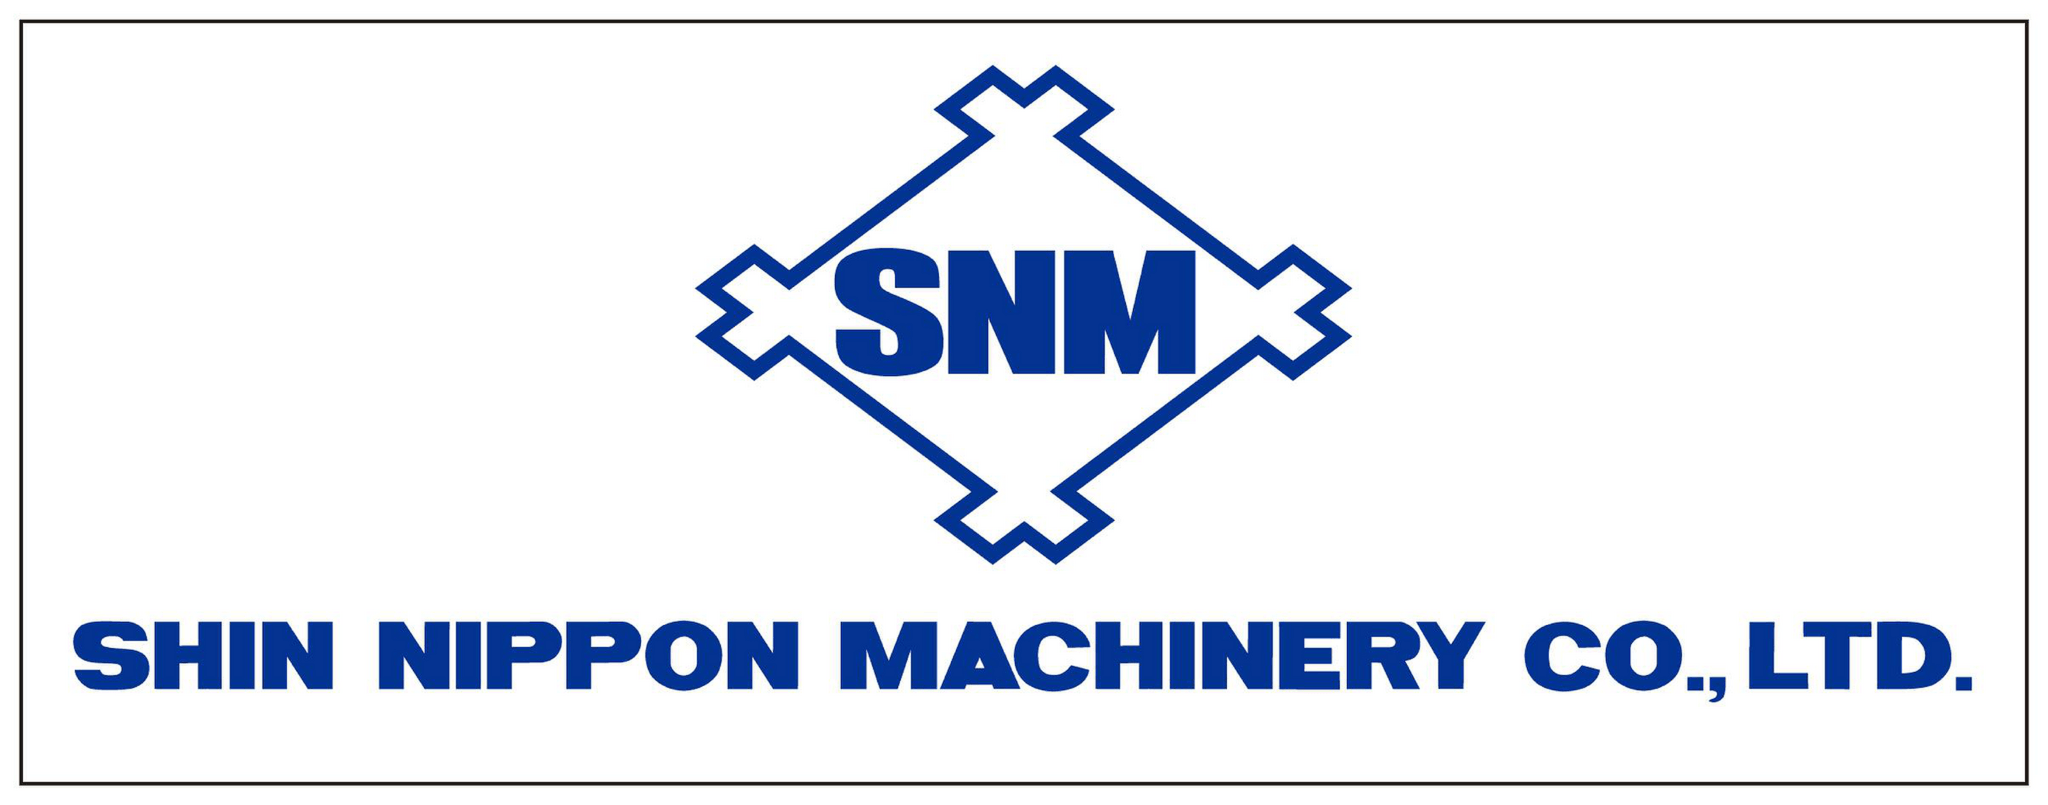 SHIN NIPPON MACHINERY CO LTD